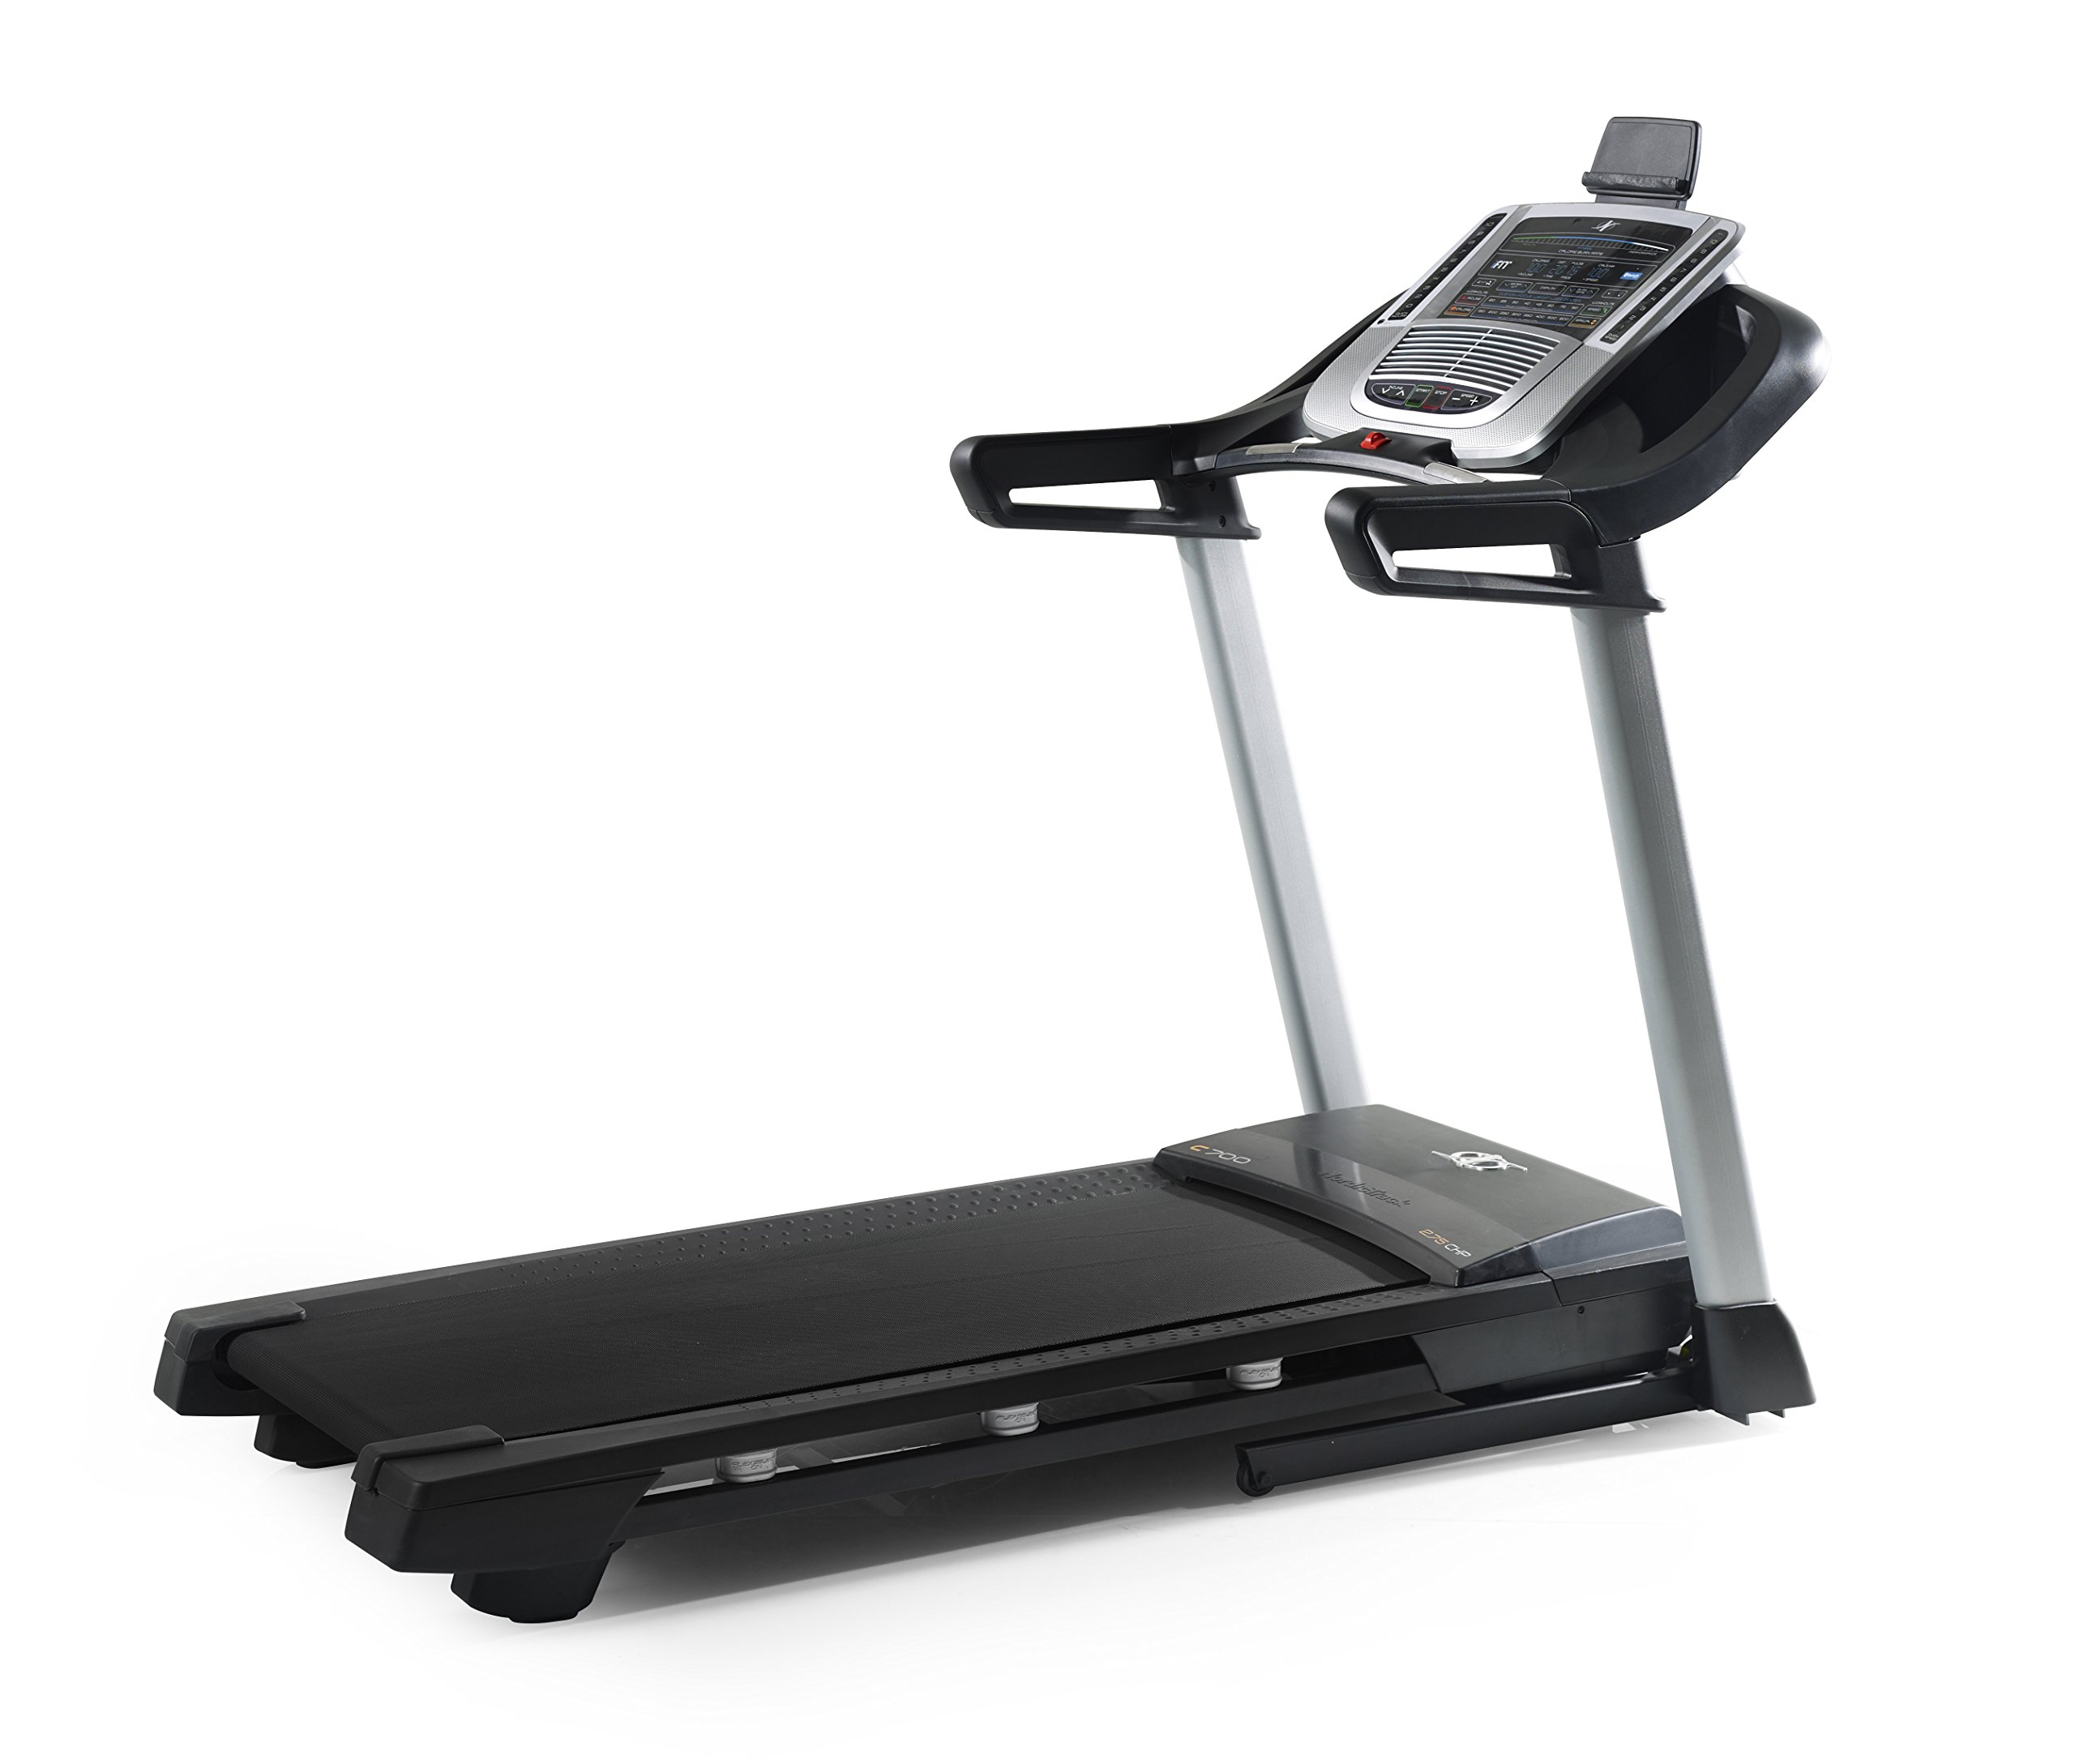 Cheap Used Nordic Track Treadmill For Sale, Find Used